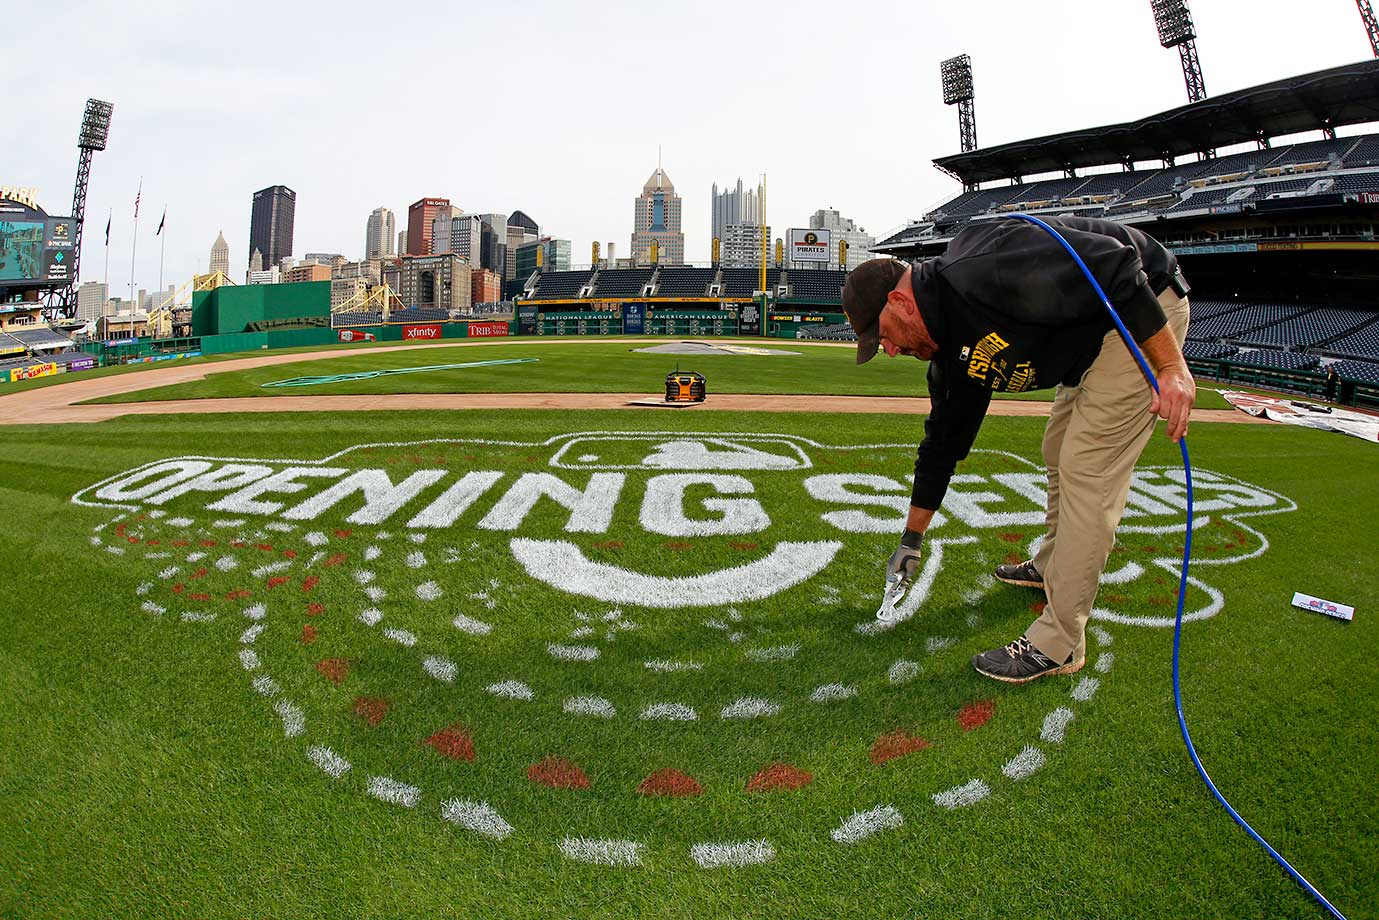 Matt Gerhardt paints the field in Pittsburgh in advance of Sunday's MLB season opener between the Pirates and St. Louis Cardinals.